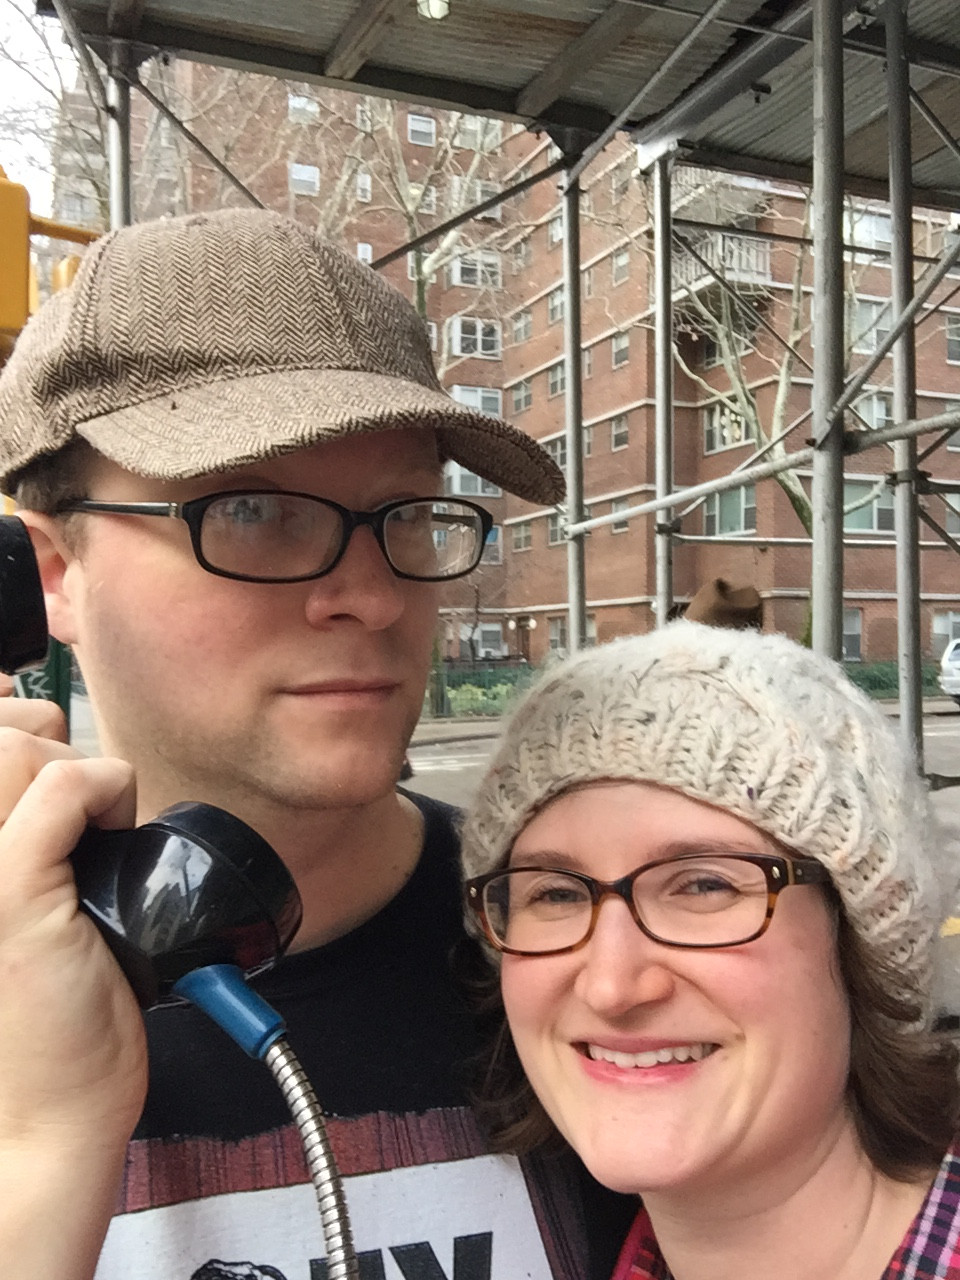 A couple use a payphone in New York City.